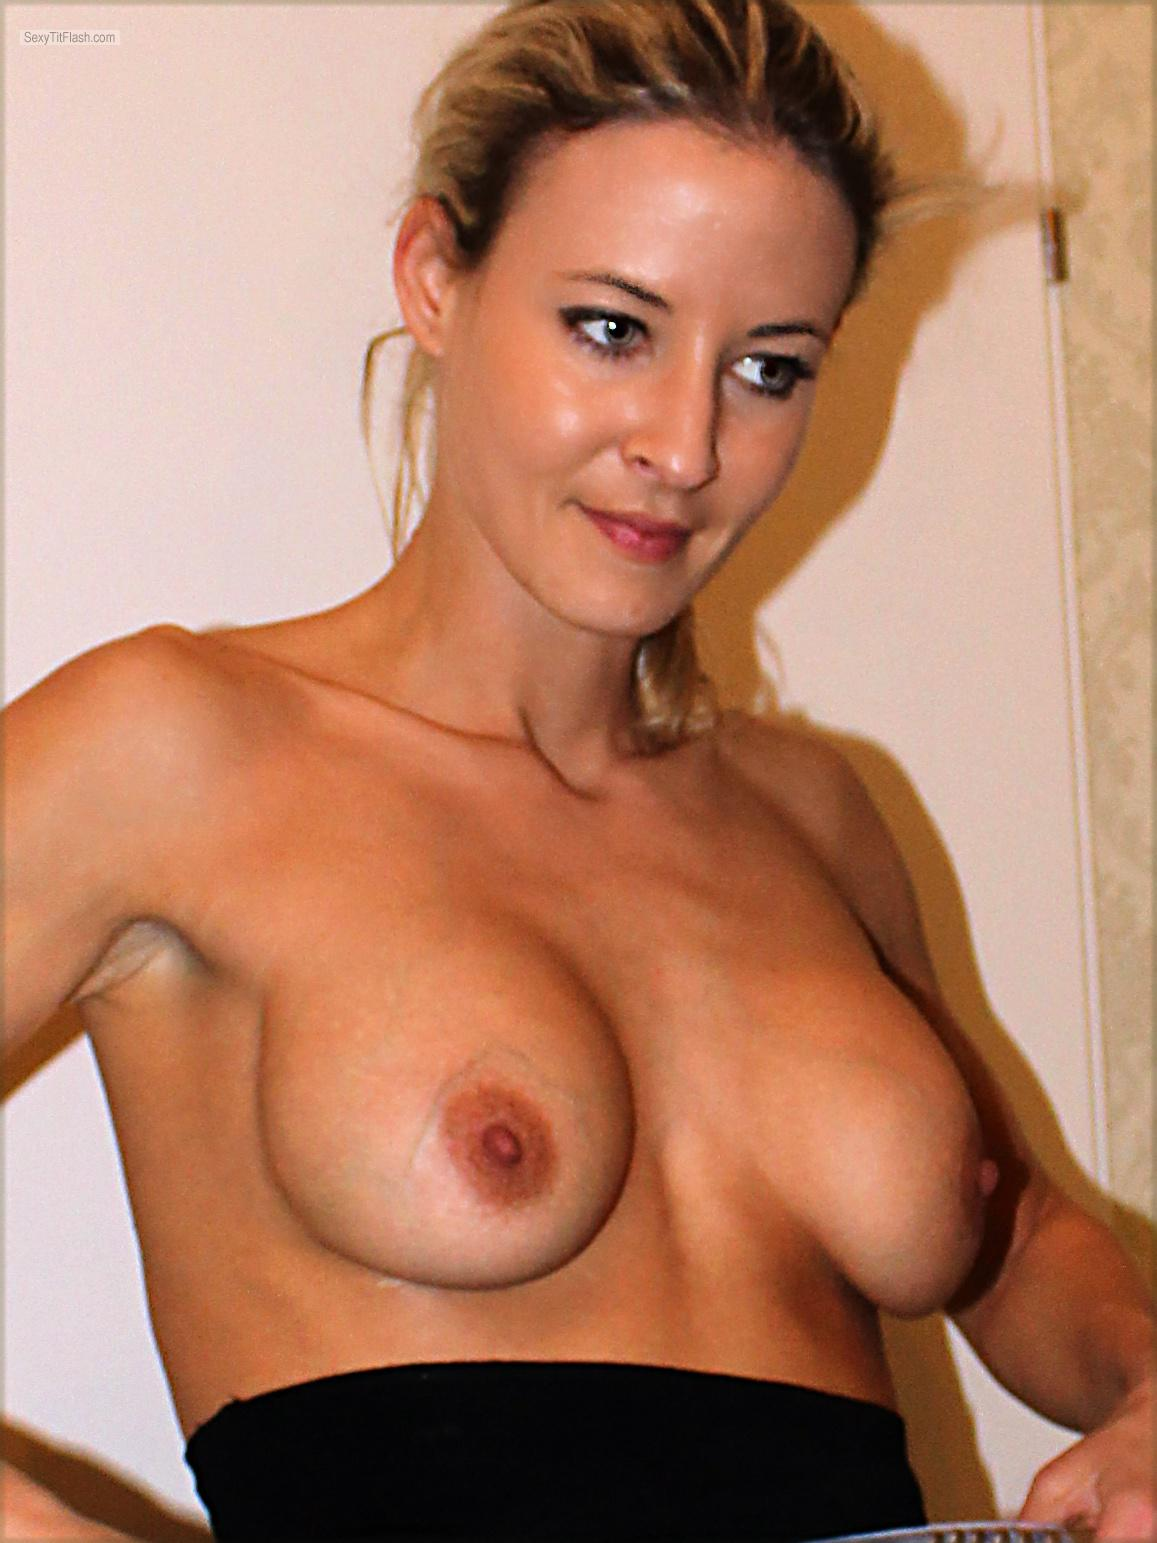 Tit Flash: My Medium Tits - Topless Marie from France